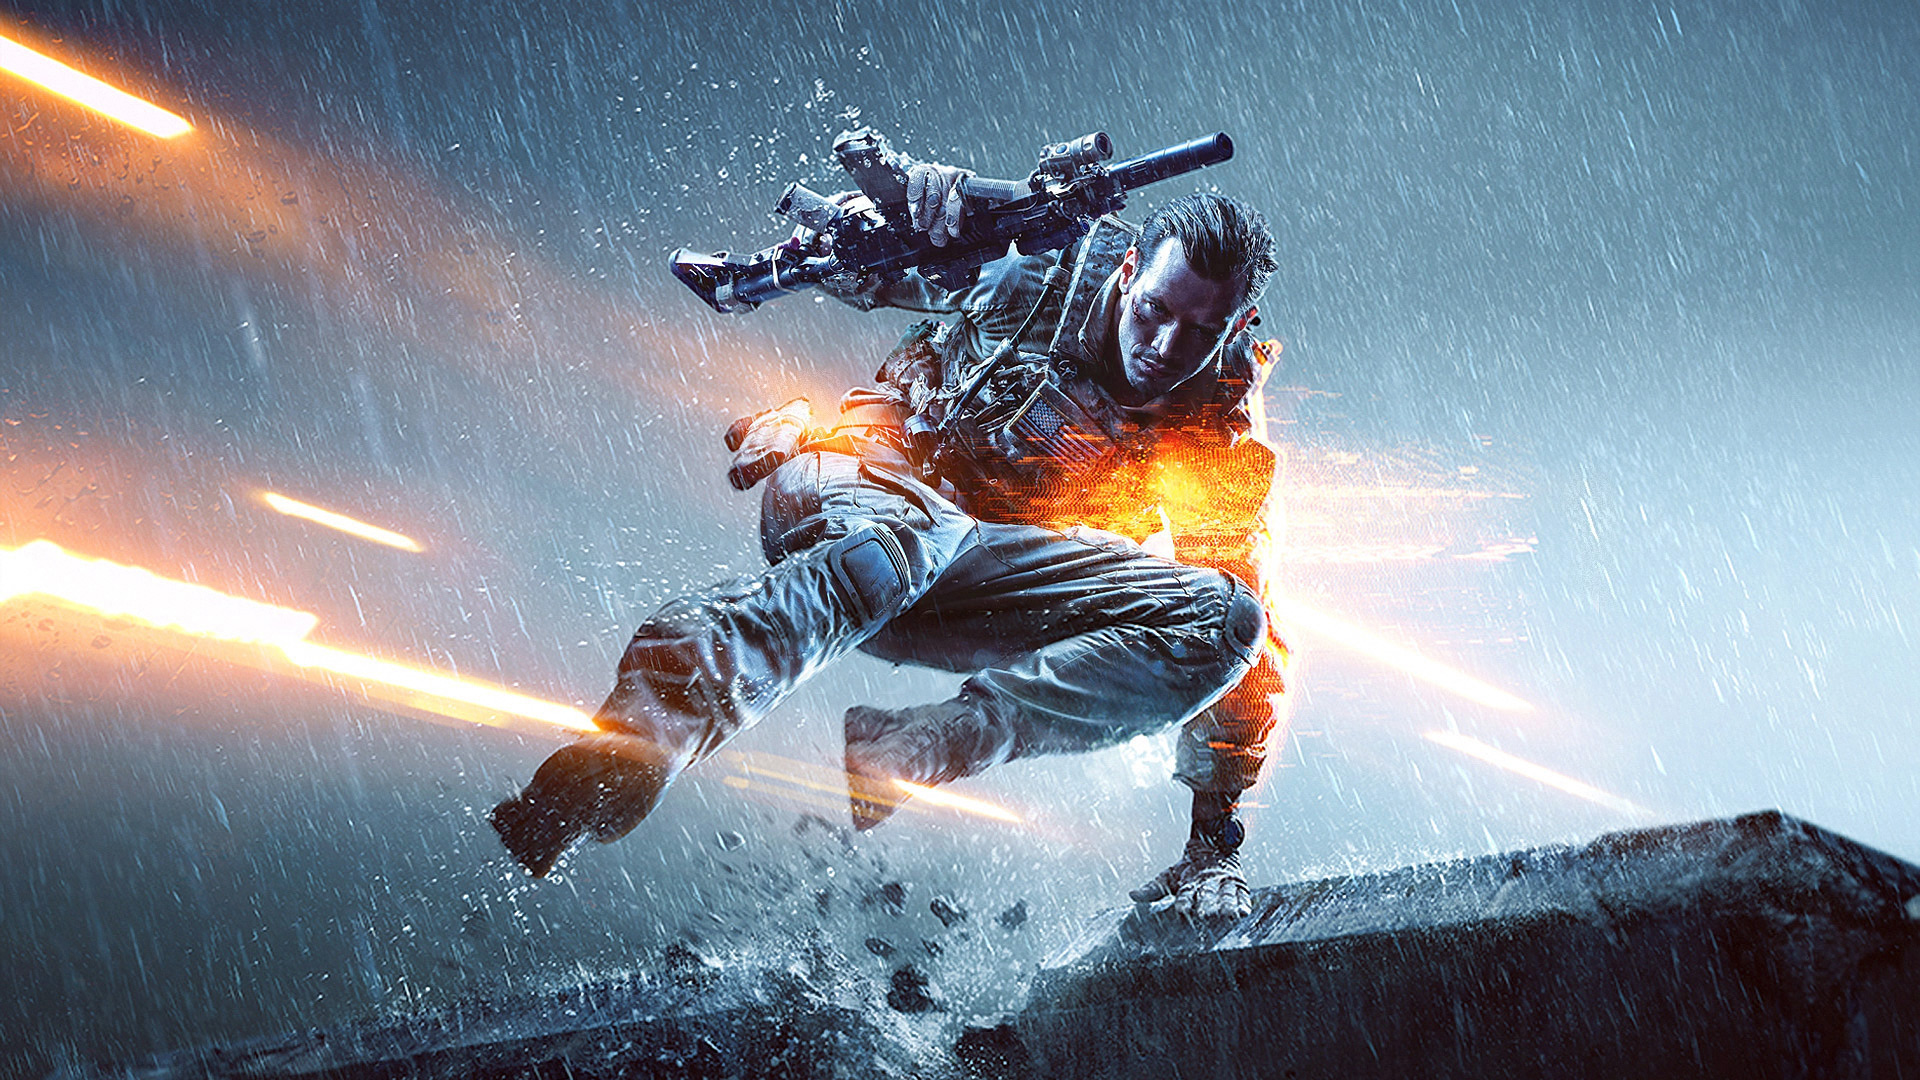 Battlefield 5 Devs Are Sure Fans Wont Expect Impending Big Reveal 473063